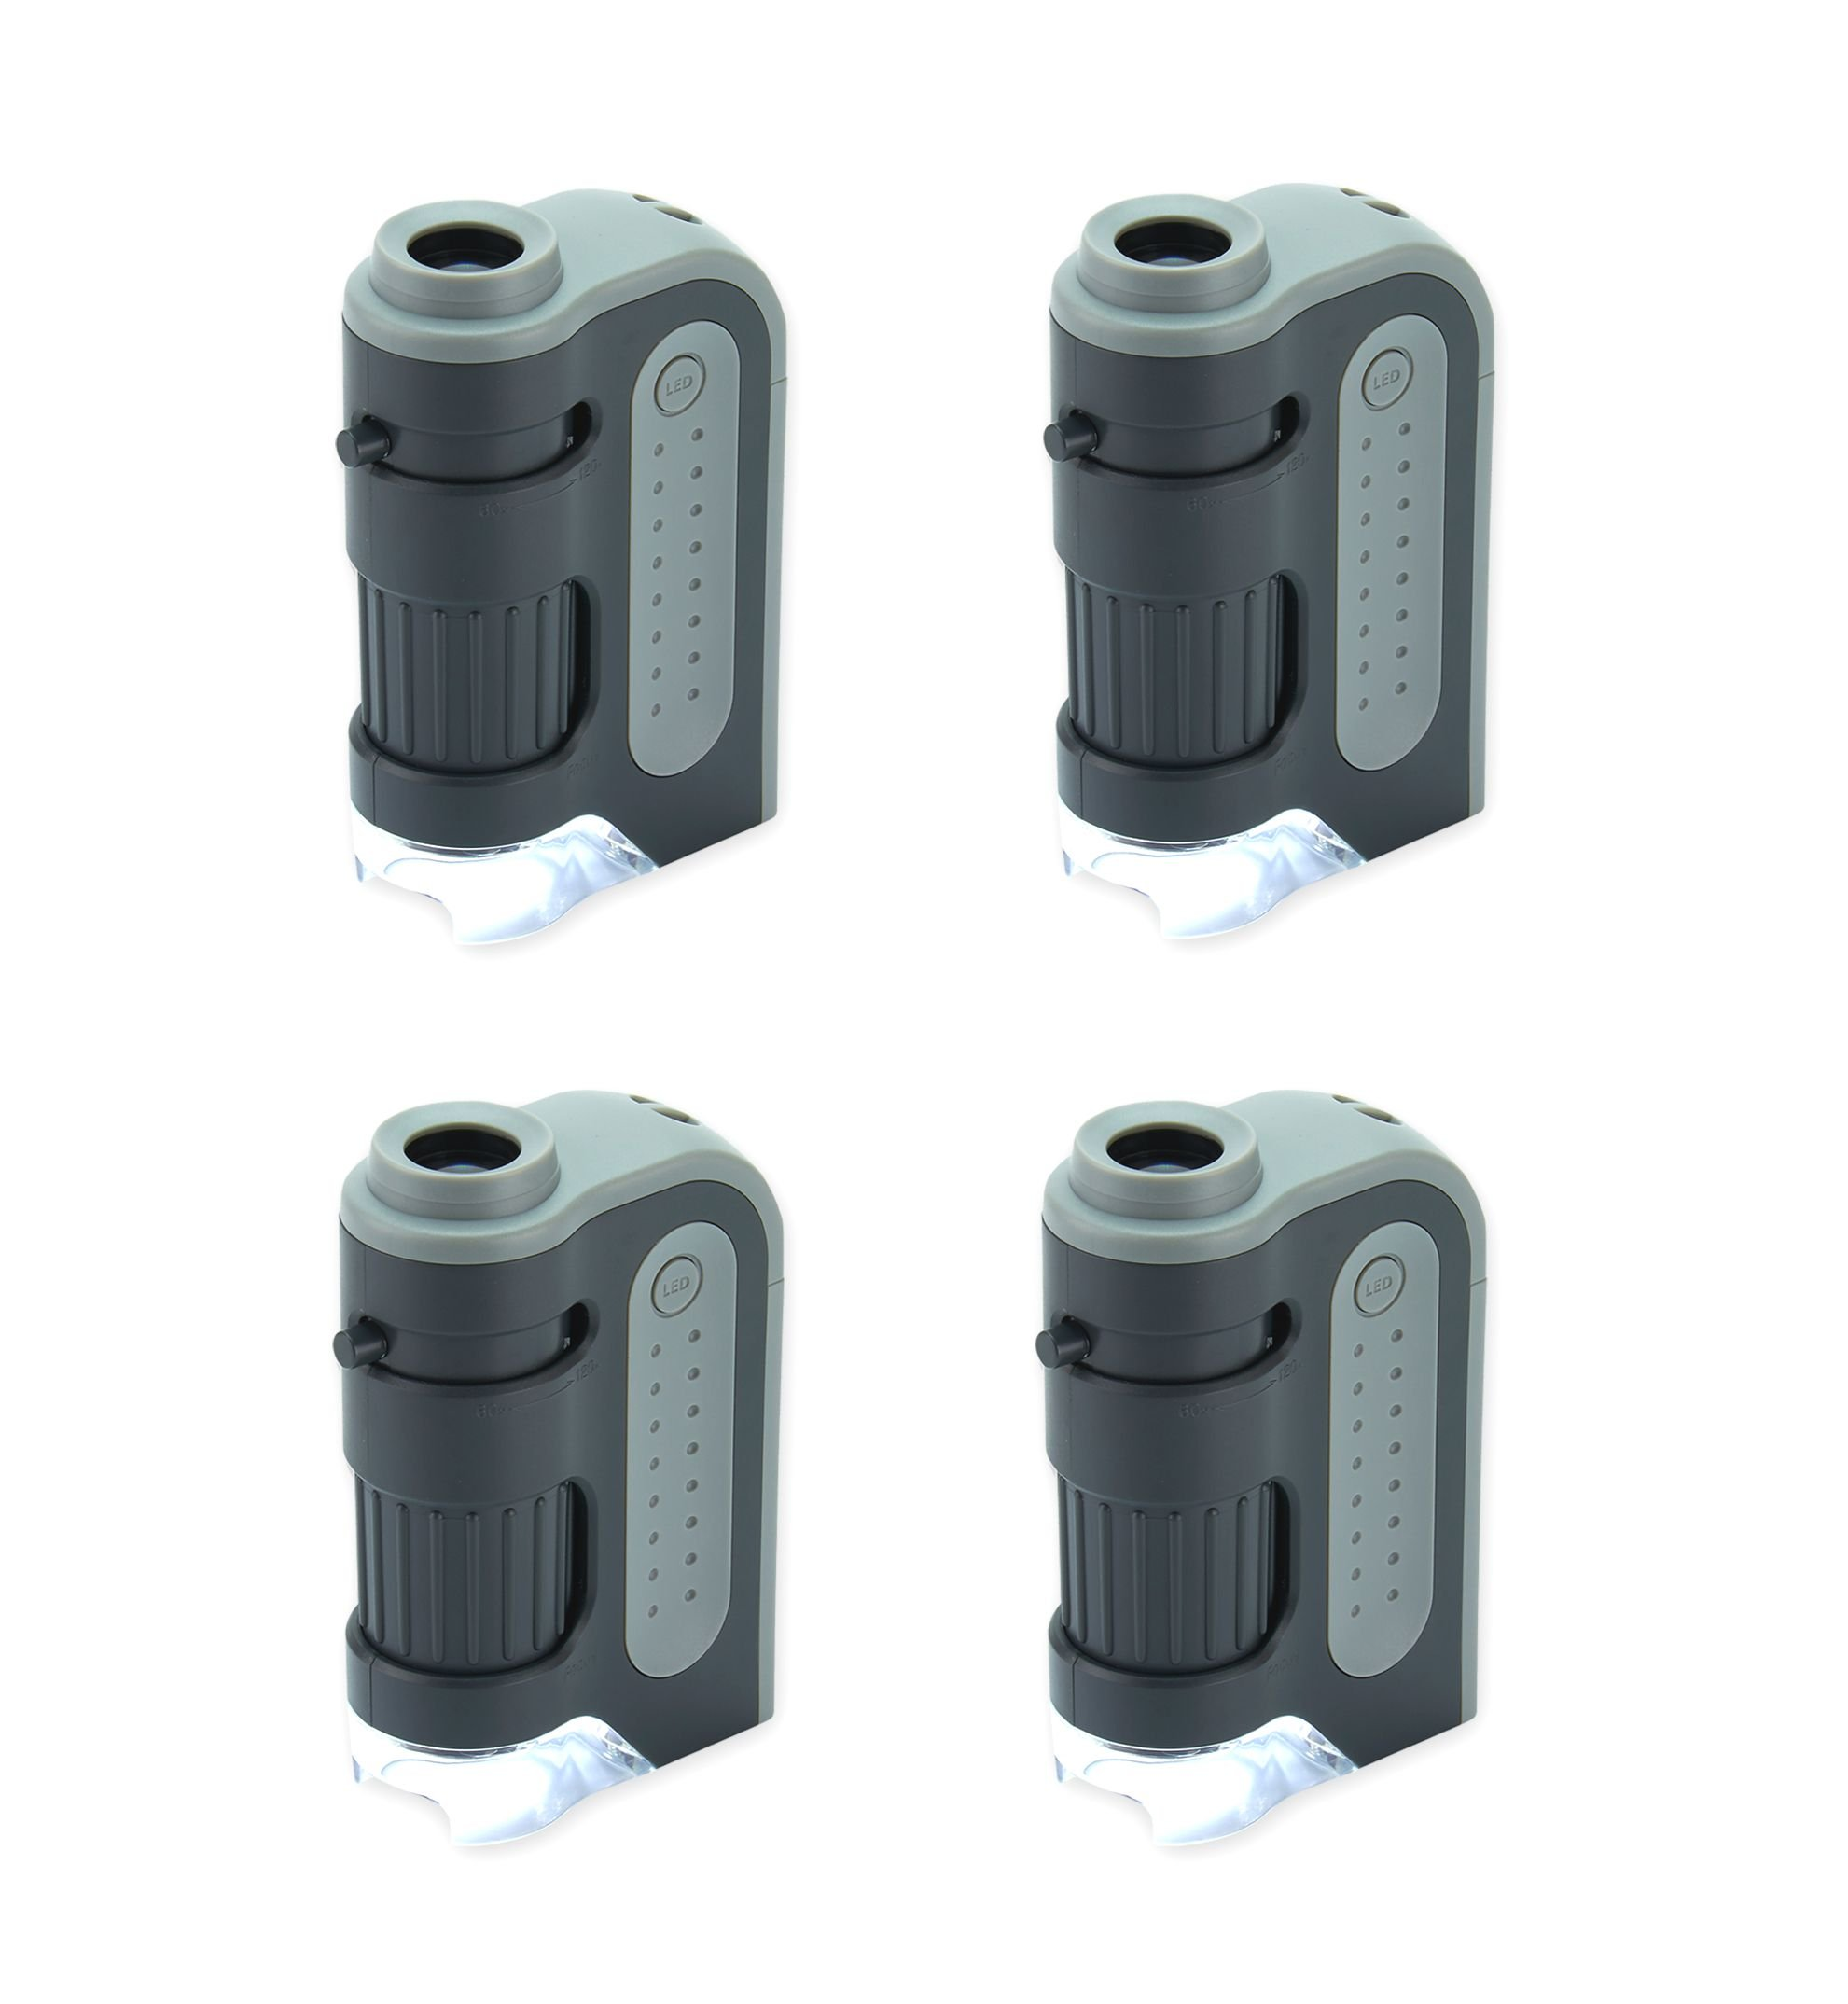 Carson MicroBrite Plus 60x-120x Power LED Lighted Pocket Microscope - Set of 4 (MM-300MU) by Carson